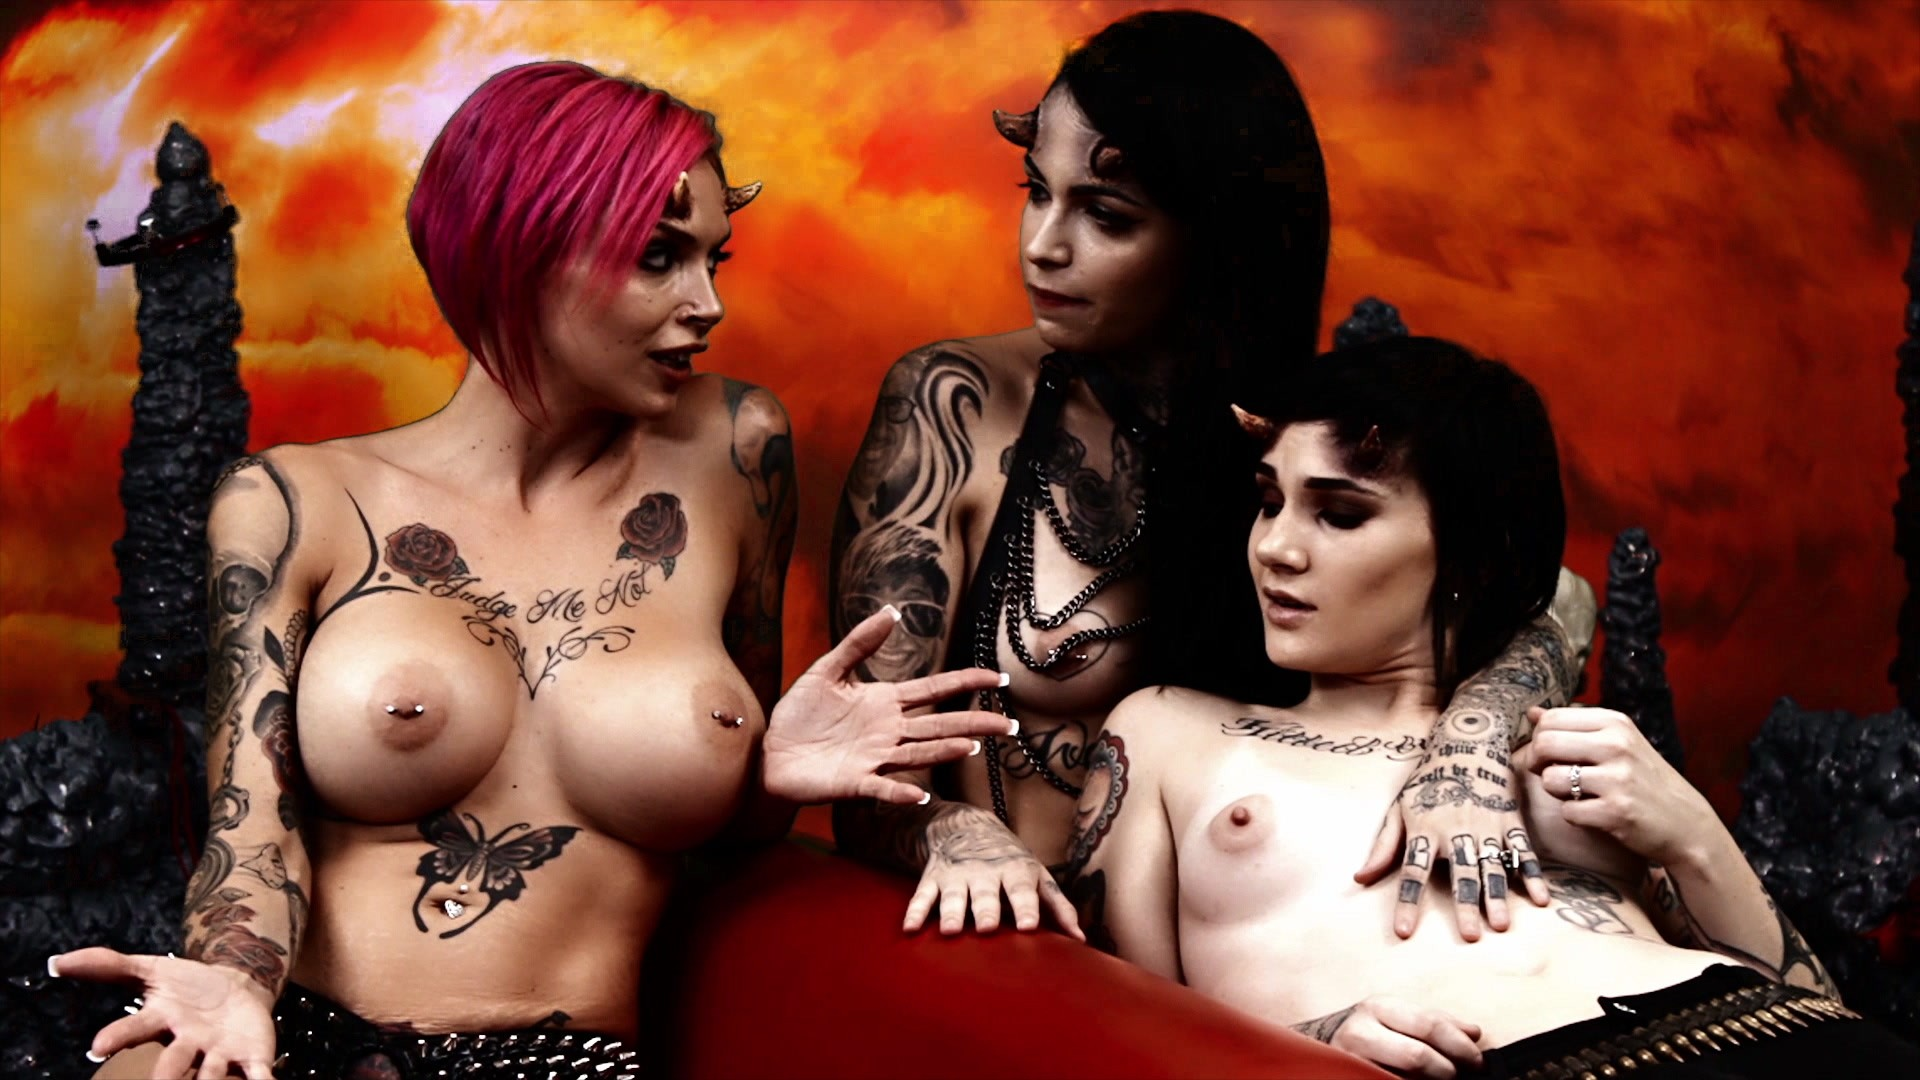 Scene with Nikki Hearts, Anna Bell Peaks and Leigh Raven - image 20 out of 20